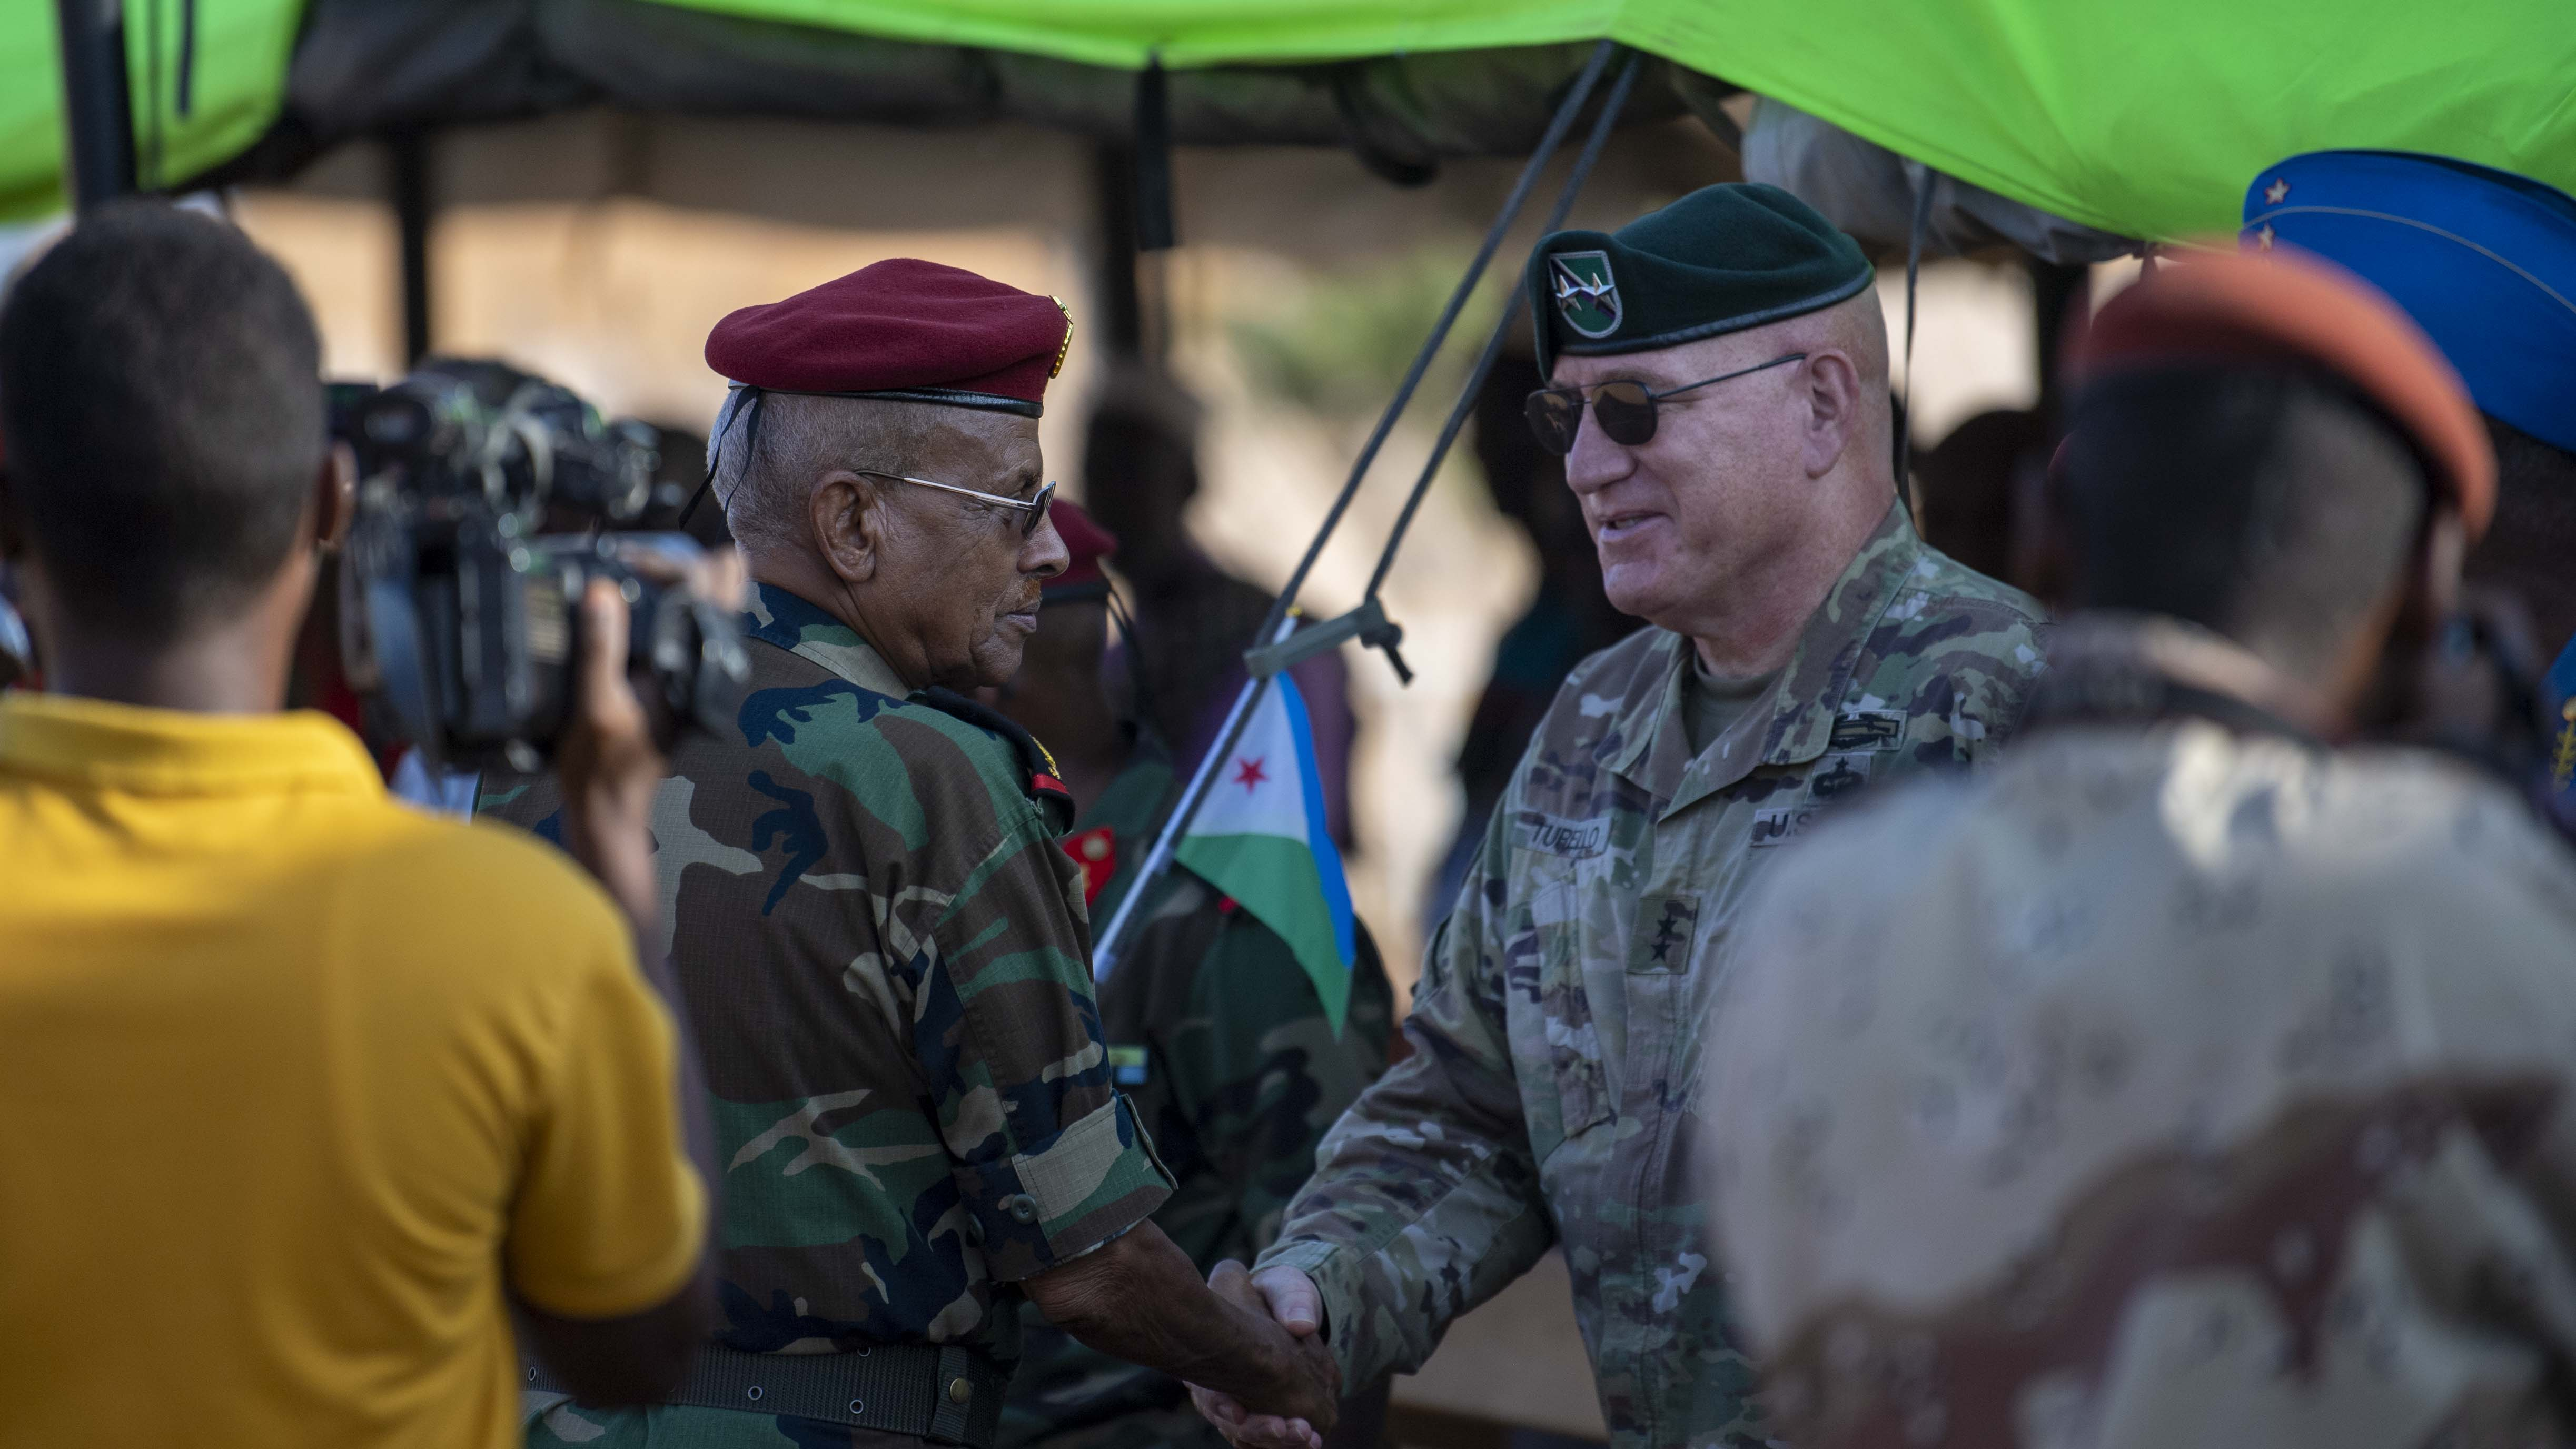 U.S. Army Maj. Gen. Michael D. Turello, commanding general of Combined Joint Task Force-Horn of Africa (CJTF-HOA) (right) shakes hands with Djiboutian Lt. Gen. Zakaria Cheikh Ibrahim, chief of staff of the Djibouti Armed Forces, during the Rapid Intervention Battalion (RIB) change of command, in Djibouti, Oct. 31, 2019. Djiboutian Maj. Mohamed Assowen assumed command of the RIB from Djiboutian Capt. Omar Ali Hassan. (U.S. Air Force photo by Staff Sgt. J.D. Strong II)